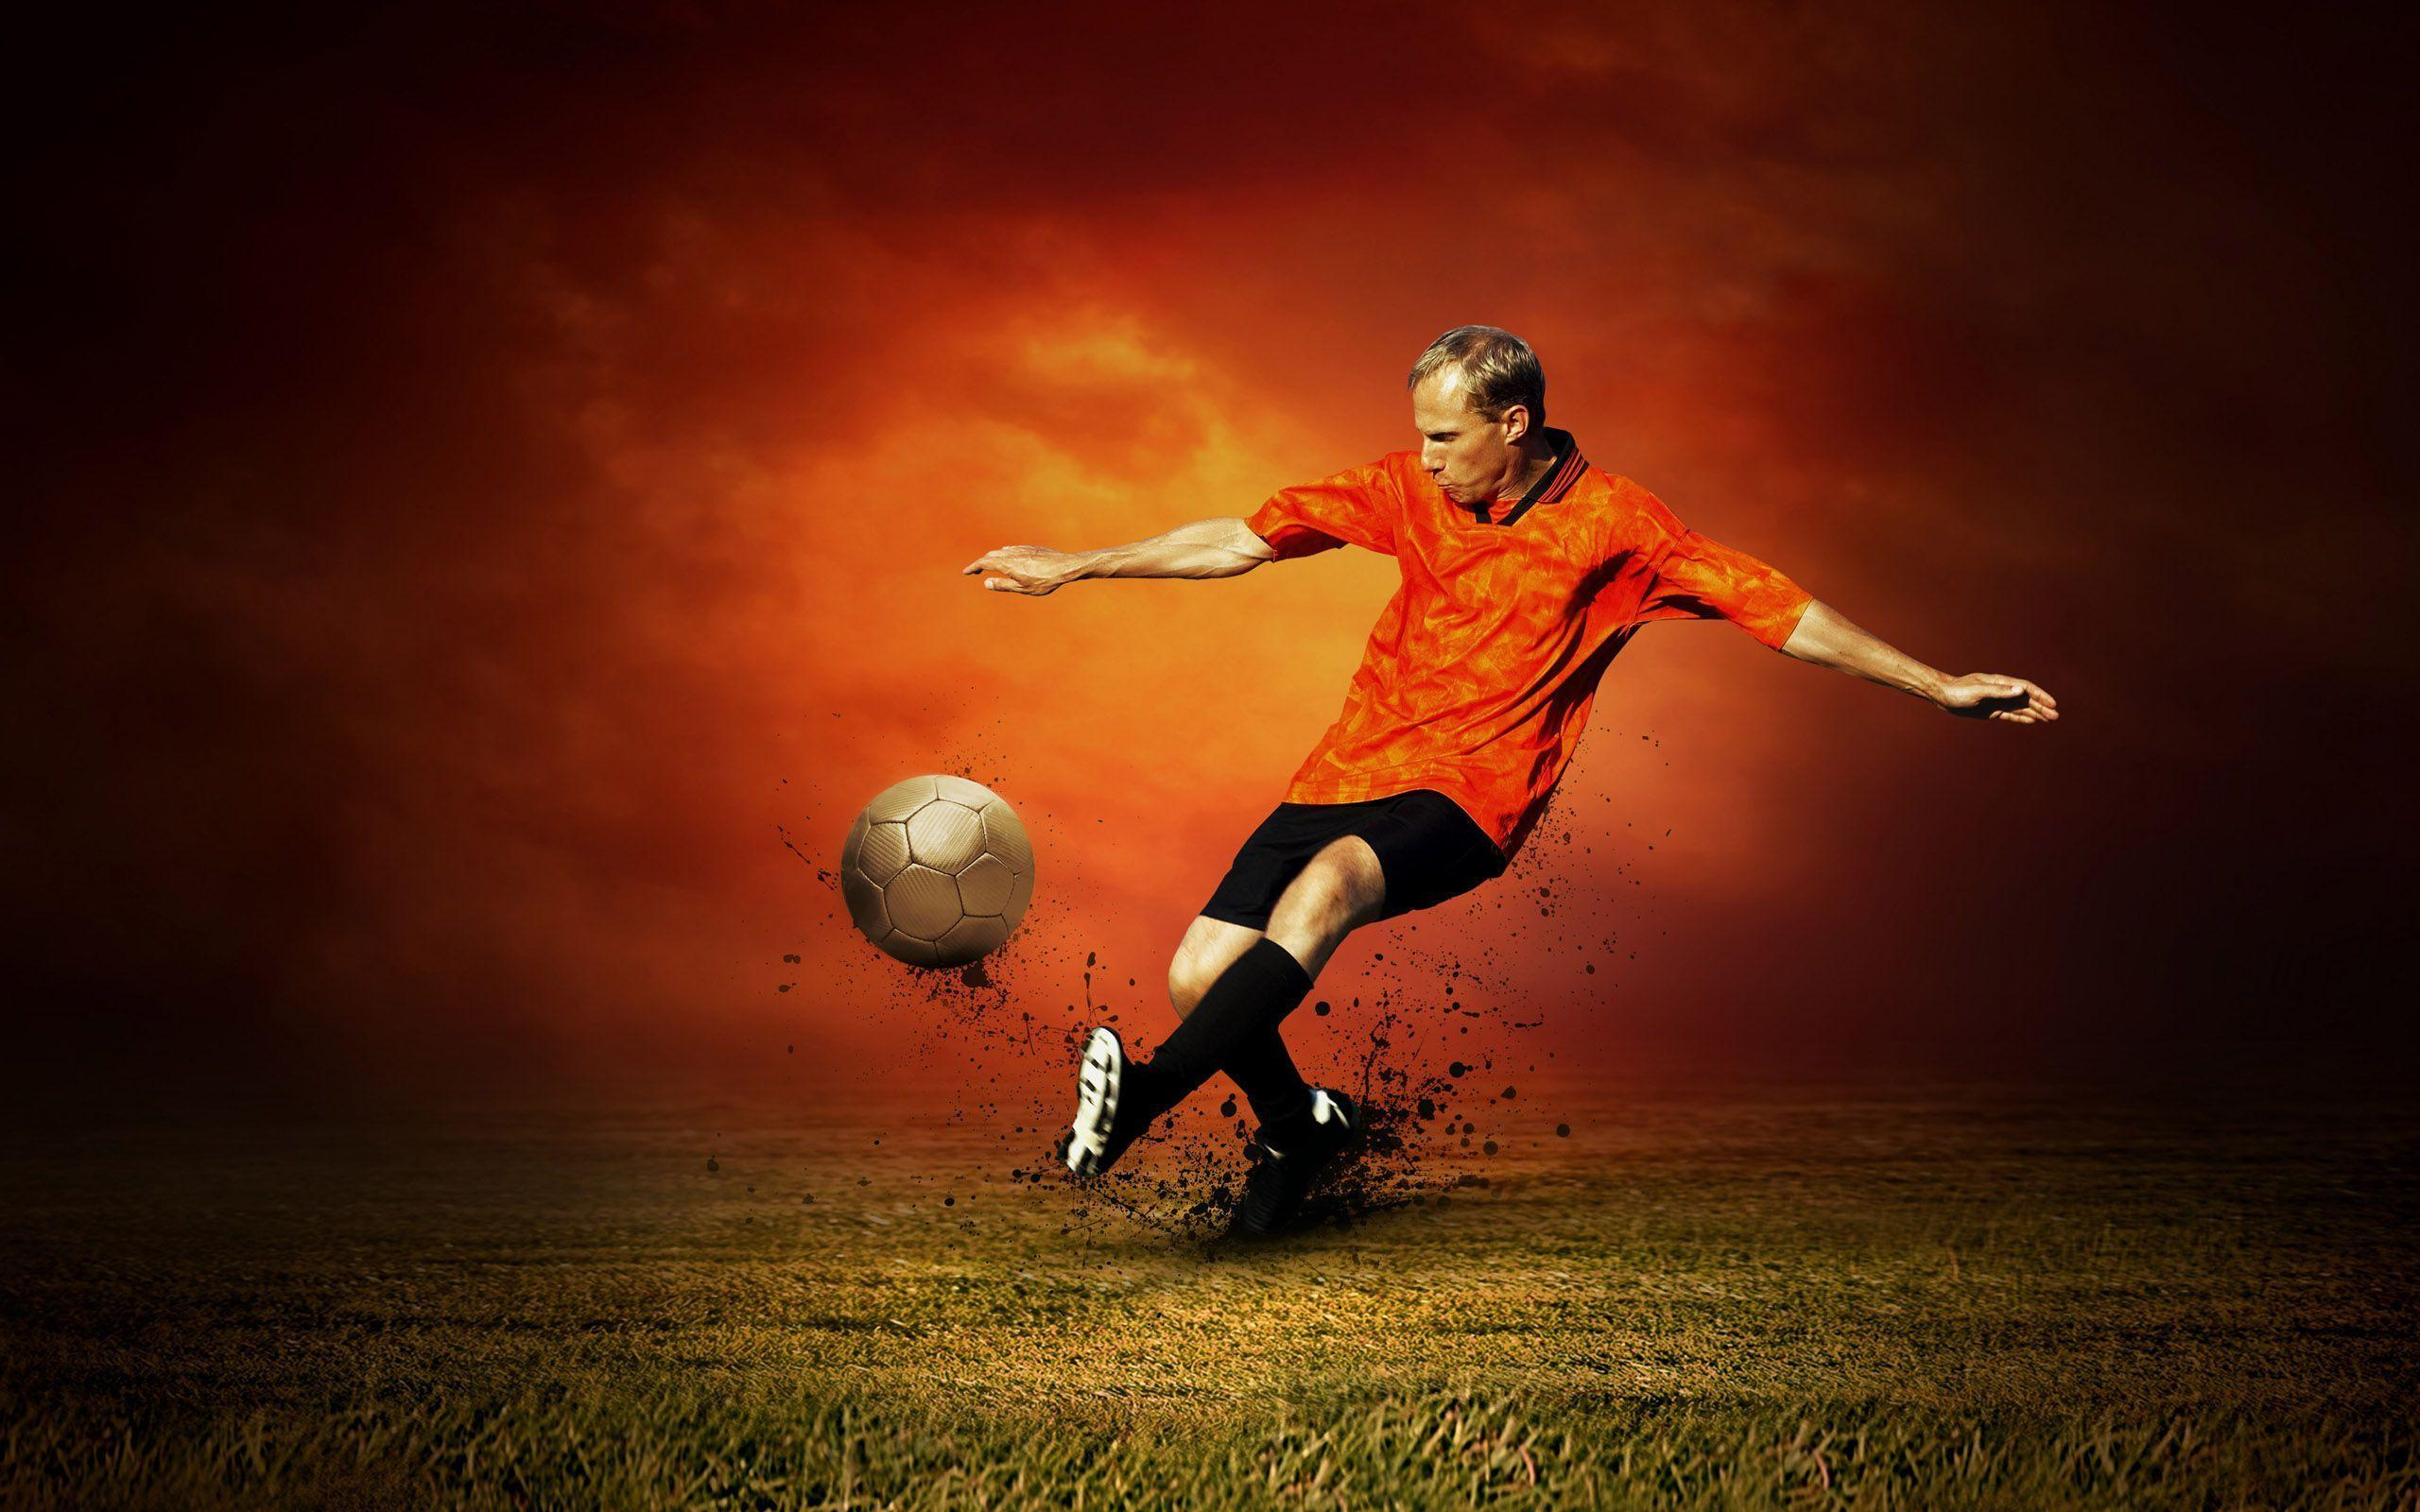 Cool Soccer Backgrounds - Wallpaper Cave Soccer Backgrounds For Photography